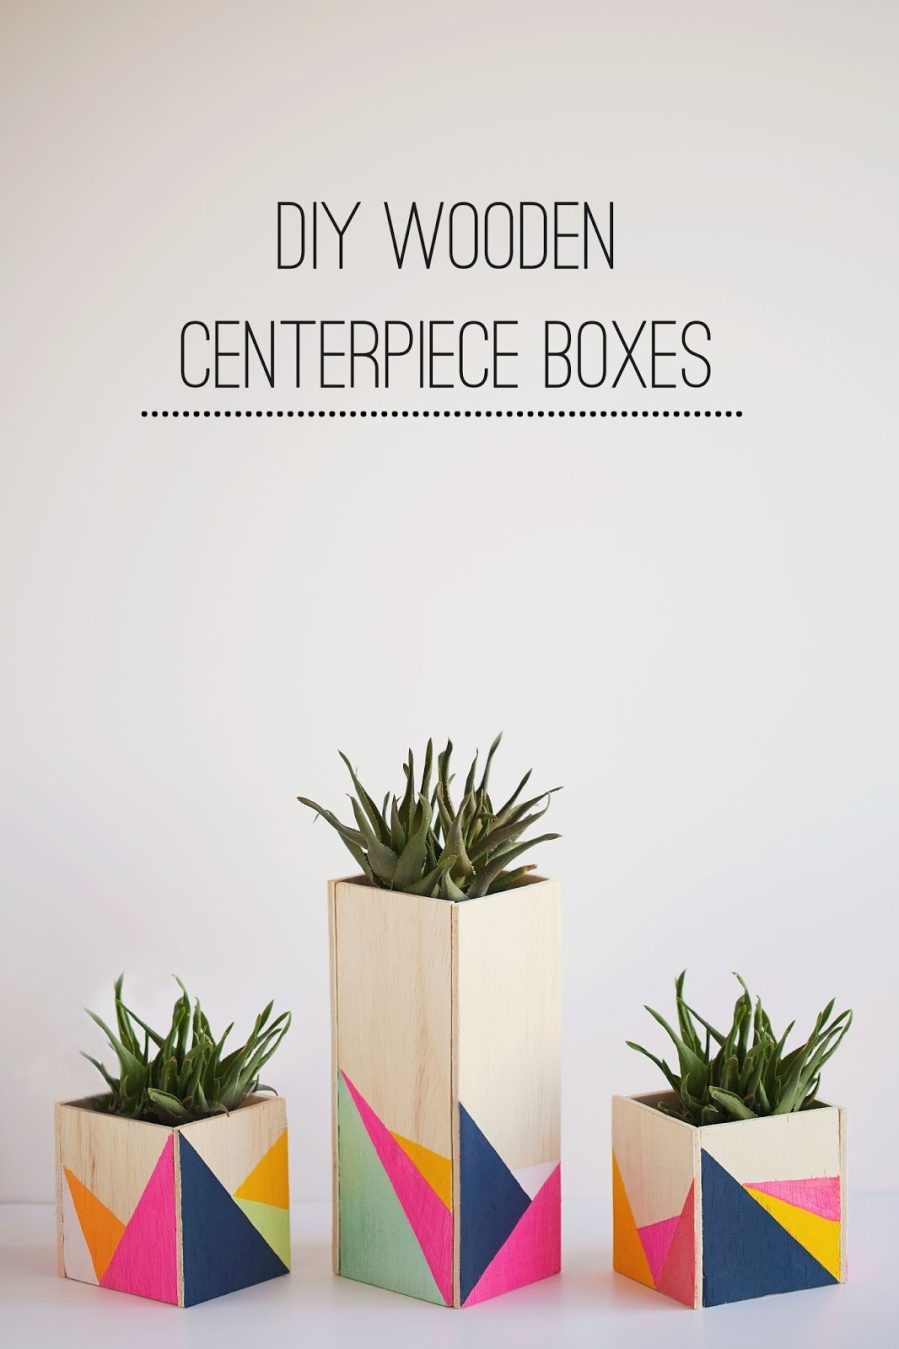 DIY WOODEN CENTERPIECE BOXES